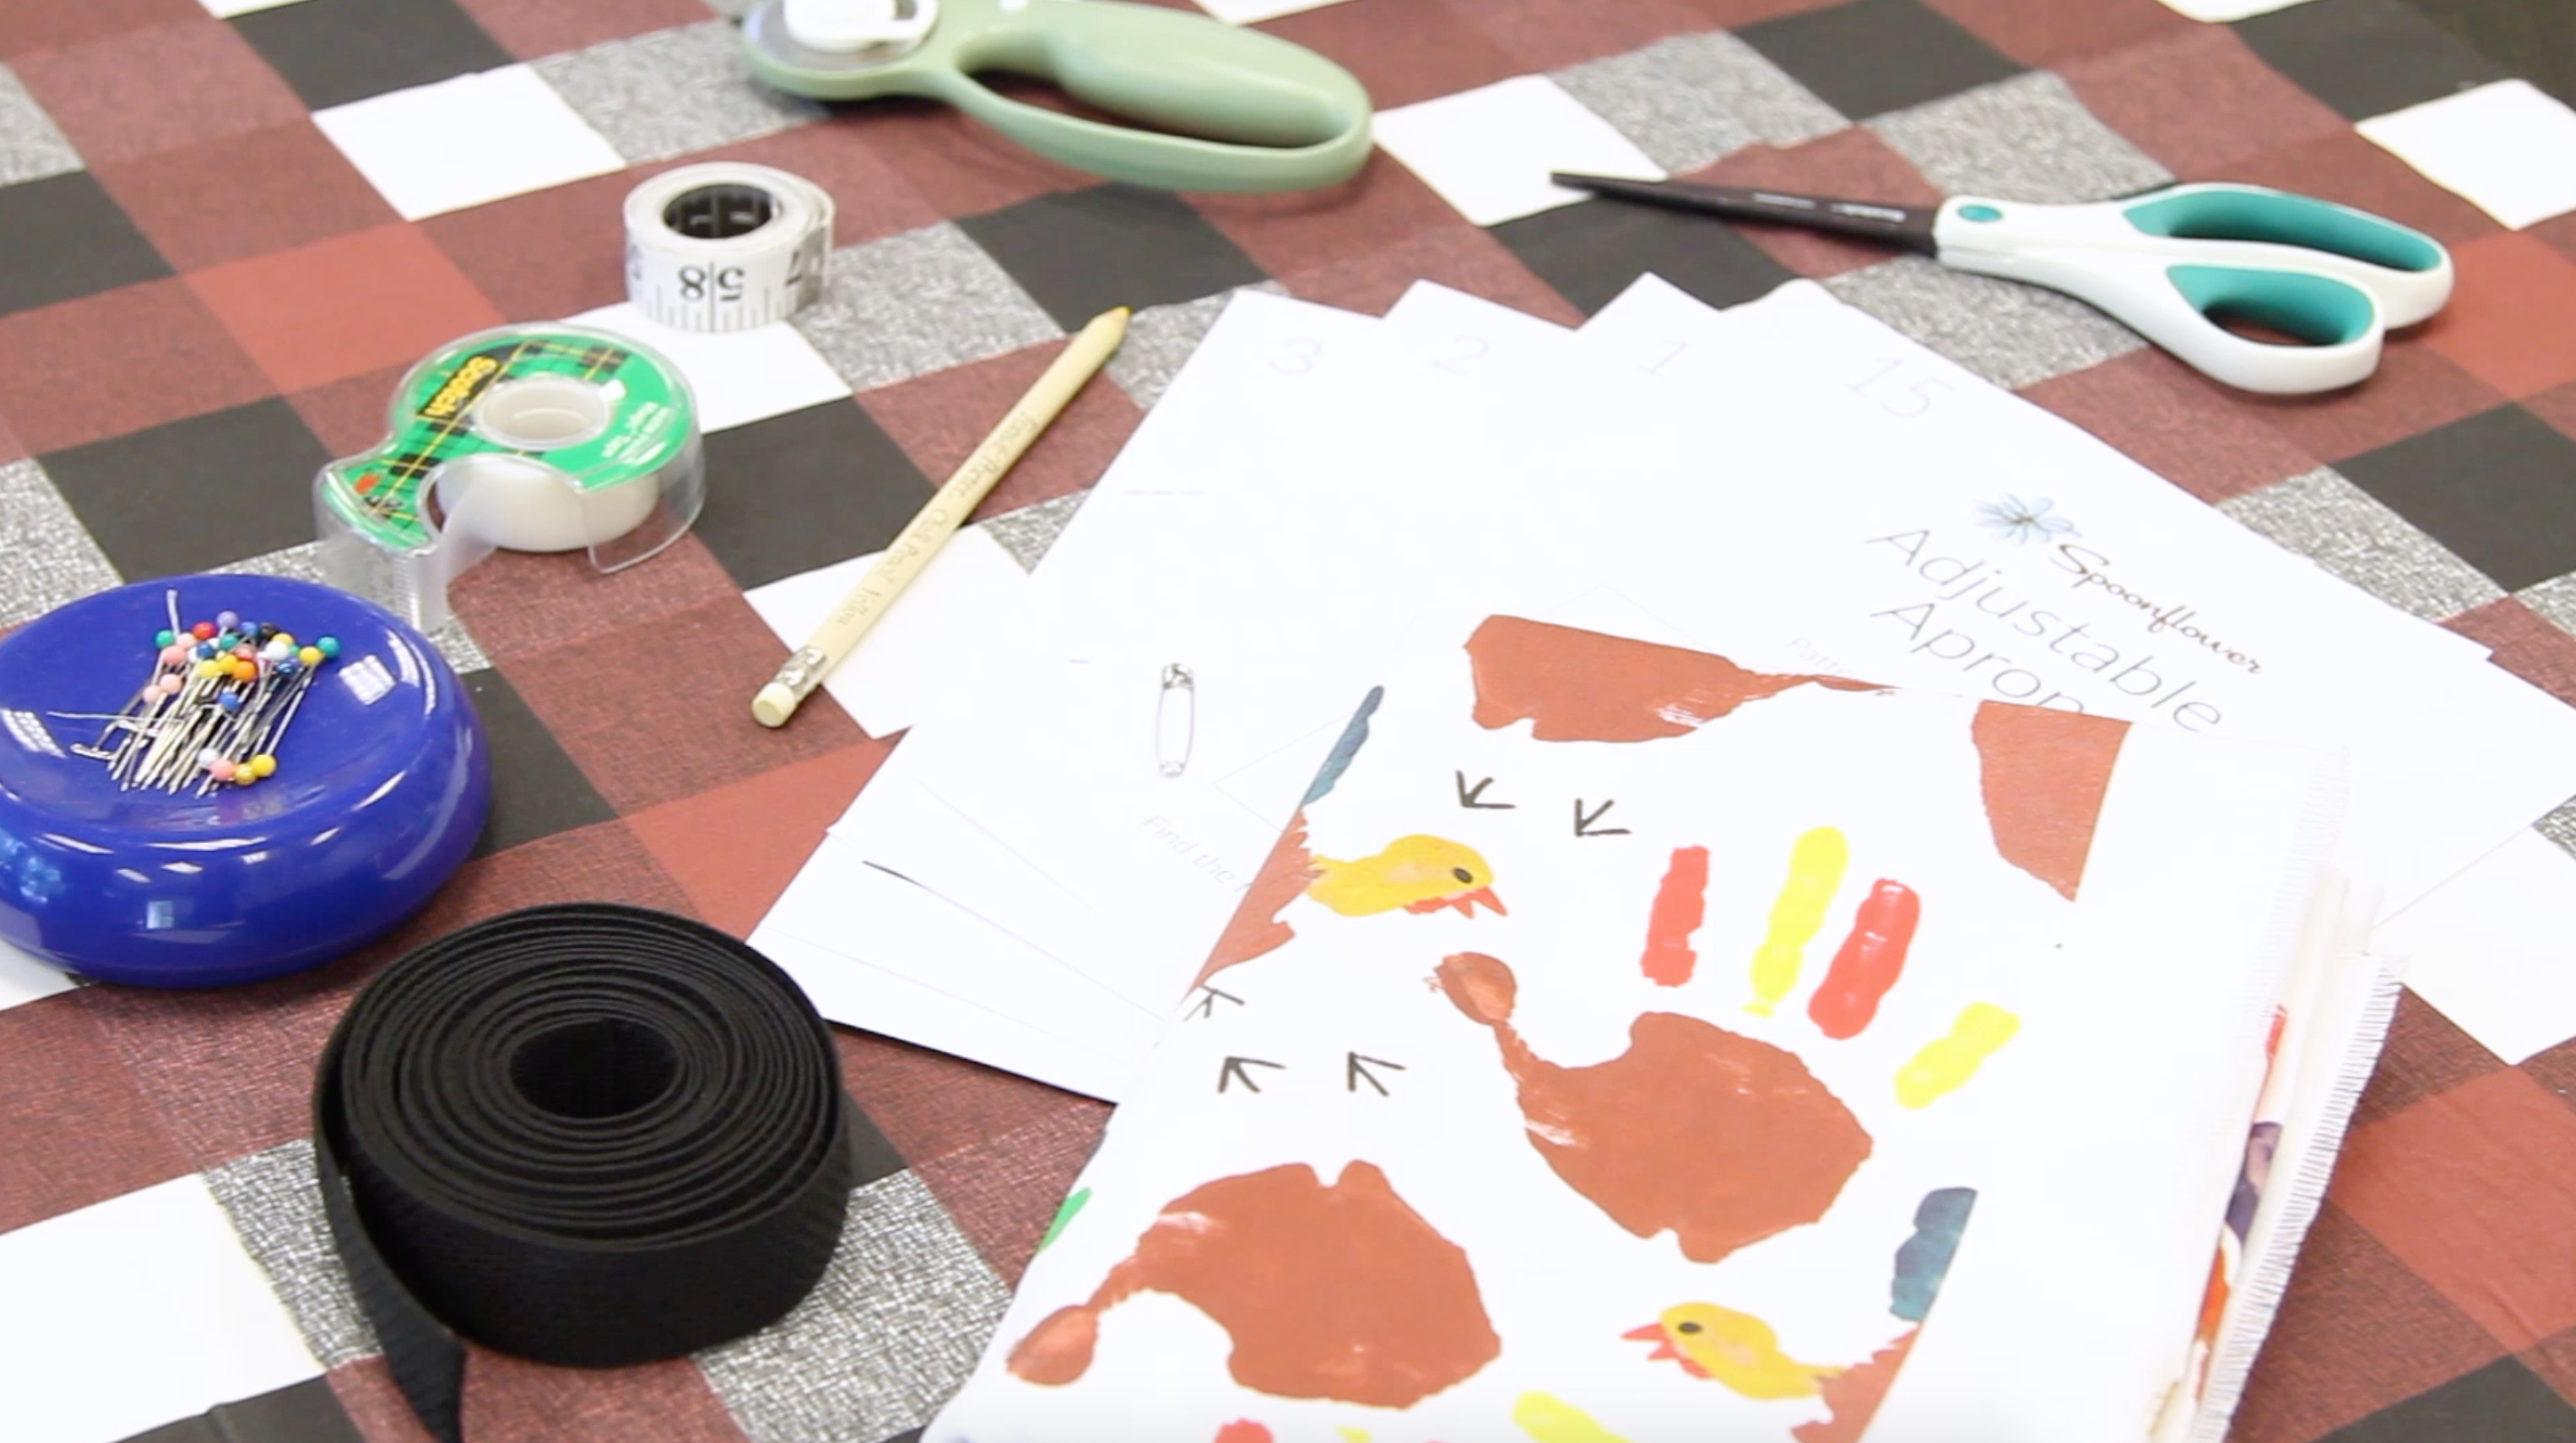 Getting materials ready for our apron | Spoonflower Blog